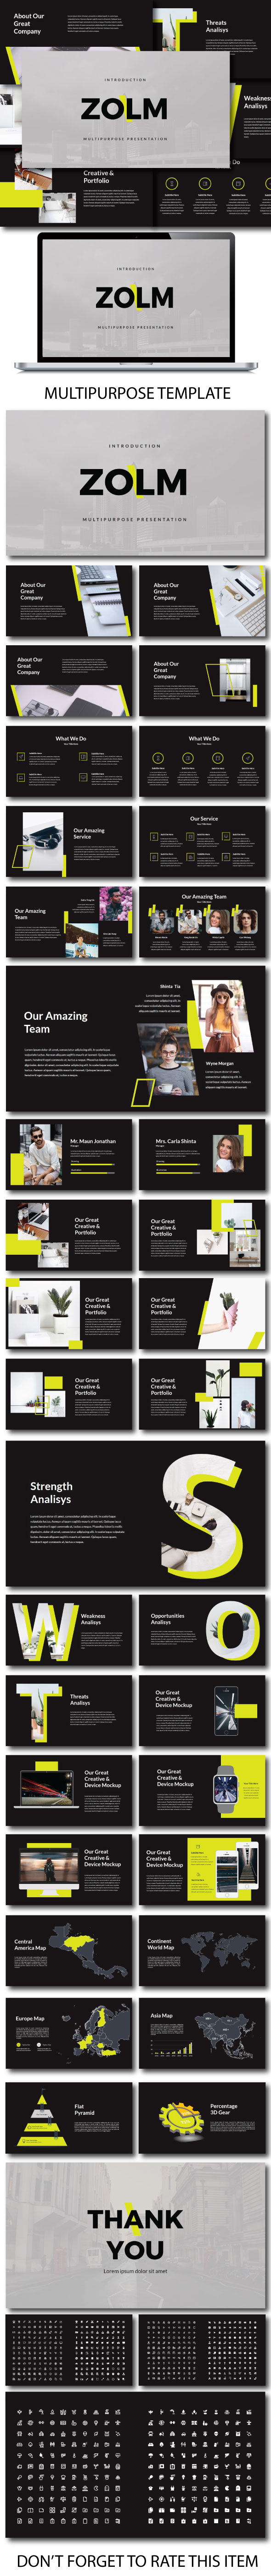 Zolm Multipurpose Powerpoint - PowerPoint Templates Presentation Templates